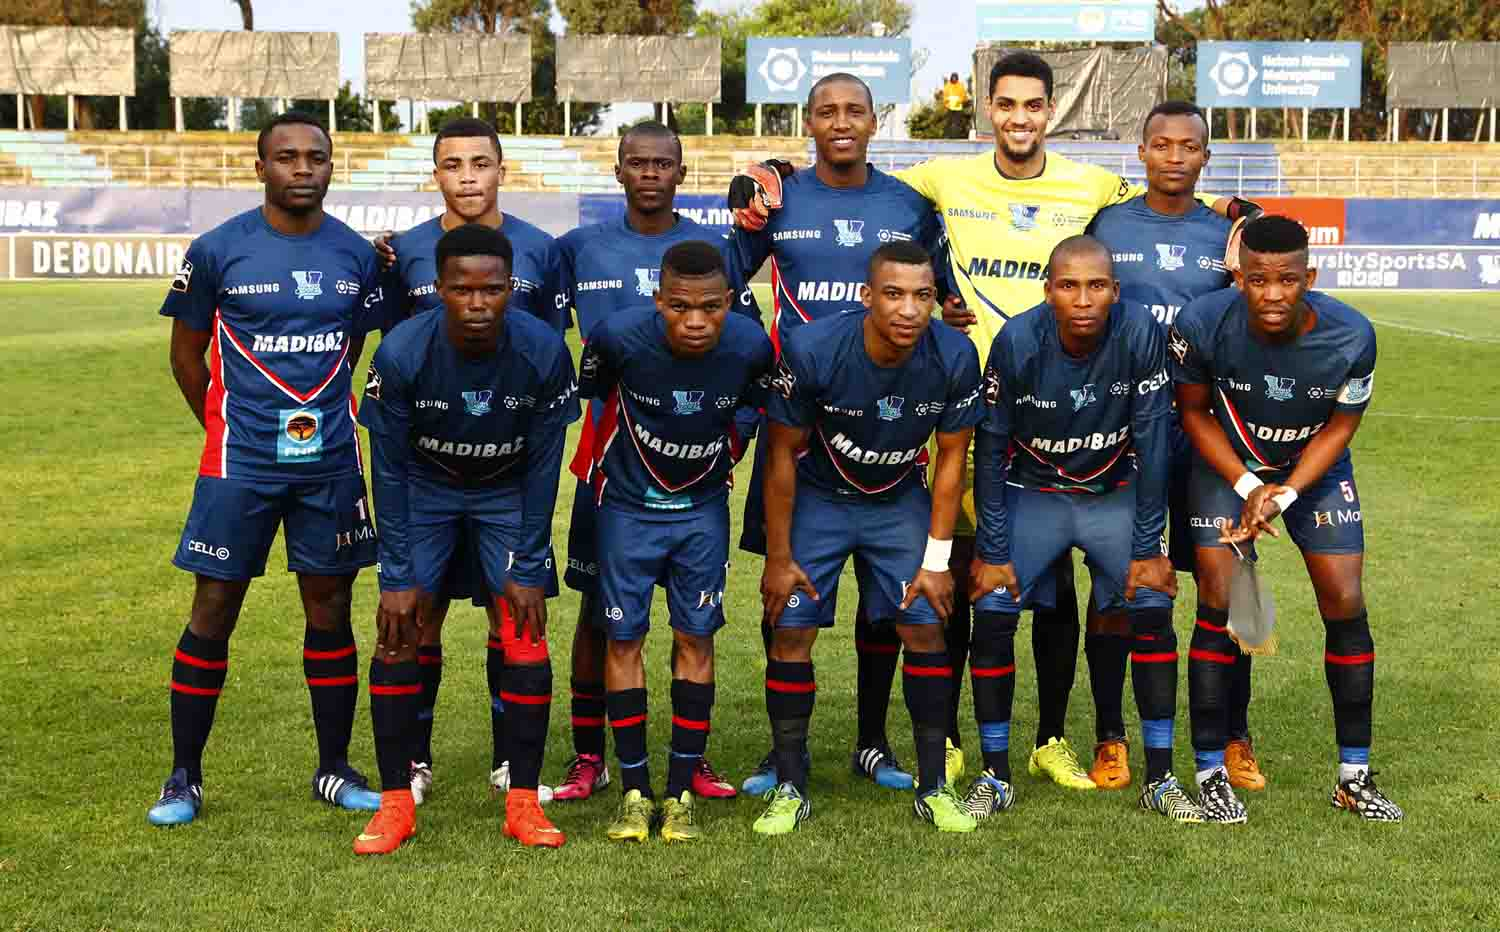 The Madibaz team ended their Varsity Football campaign on a high note with a win over log leaders UWC in Port Elizabeth on Monday night. Pictured here are (back, from left) Cloudius Sagandira, Achuma Klaas, Onke Matomela, Lonwabo Balfour, Matthew Booysen (goalkeeper) and Simamkele Thobi; and (front, from left) Zusakhe Sali, Karabo Motlhabi, Onela Beqezi, Lundi Balfour and Athini Bisha (captain). Photo: SASPA